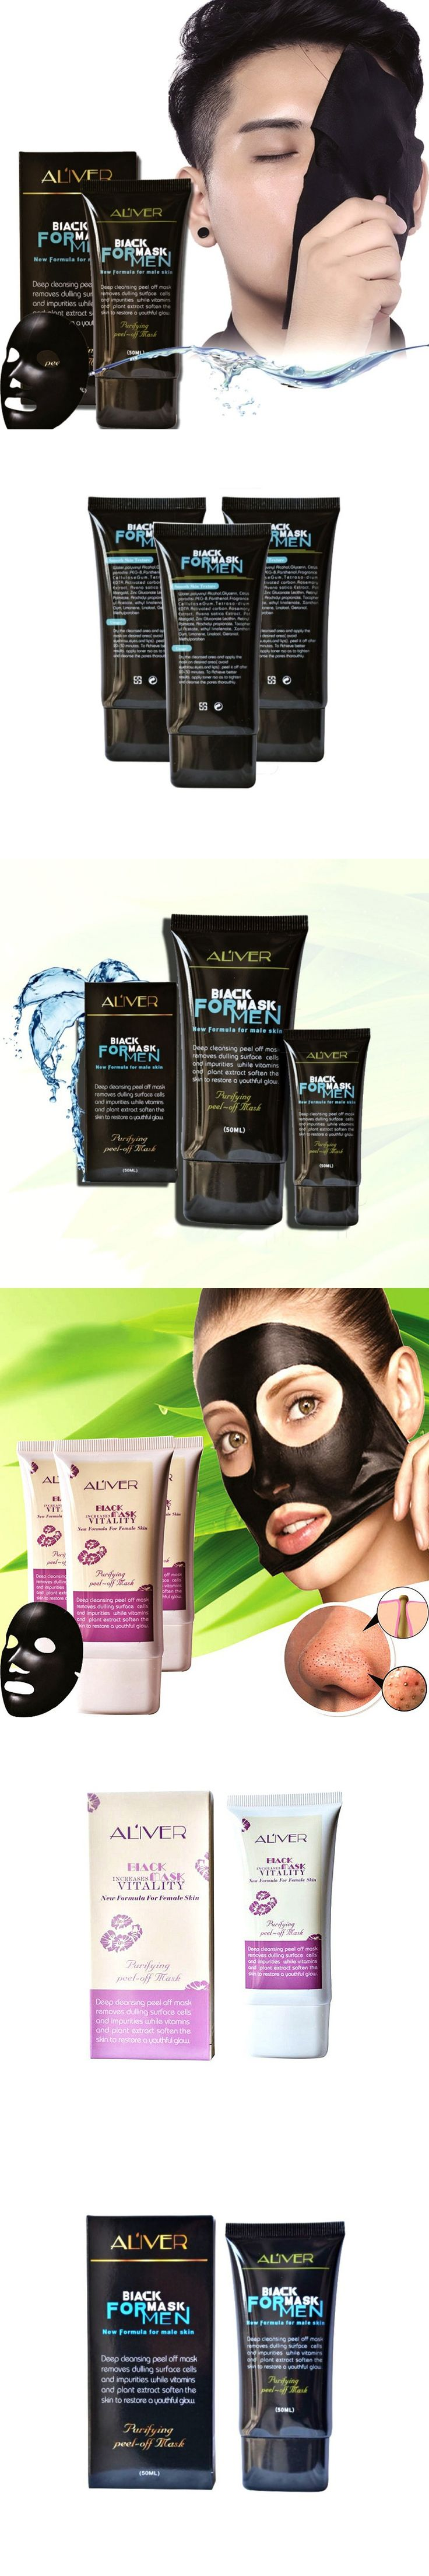 Purifying Blackhead Remover Peel-Off Facial Cleaning Black Face Mask for men women